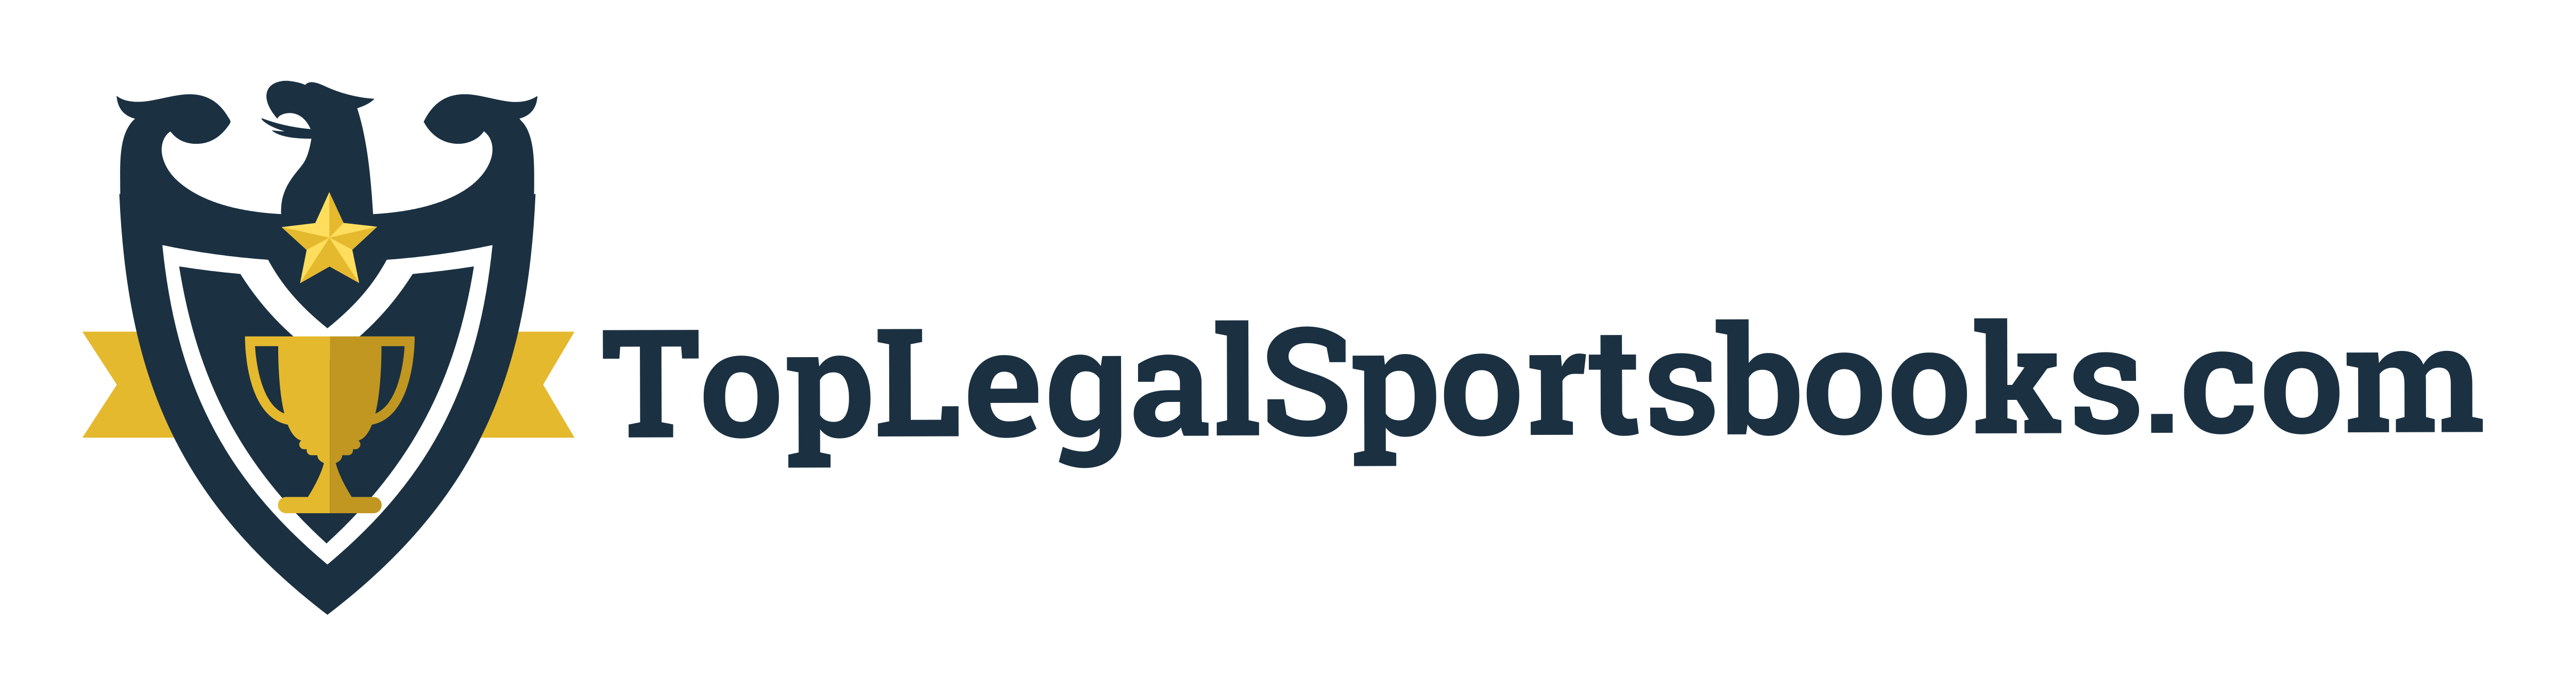 Top Legal Sportsbooks